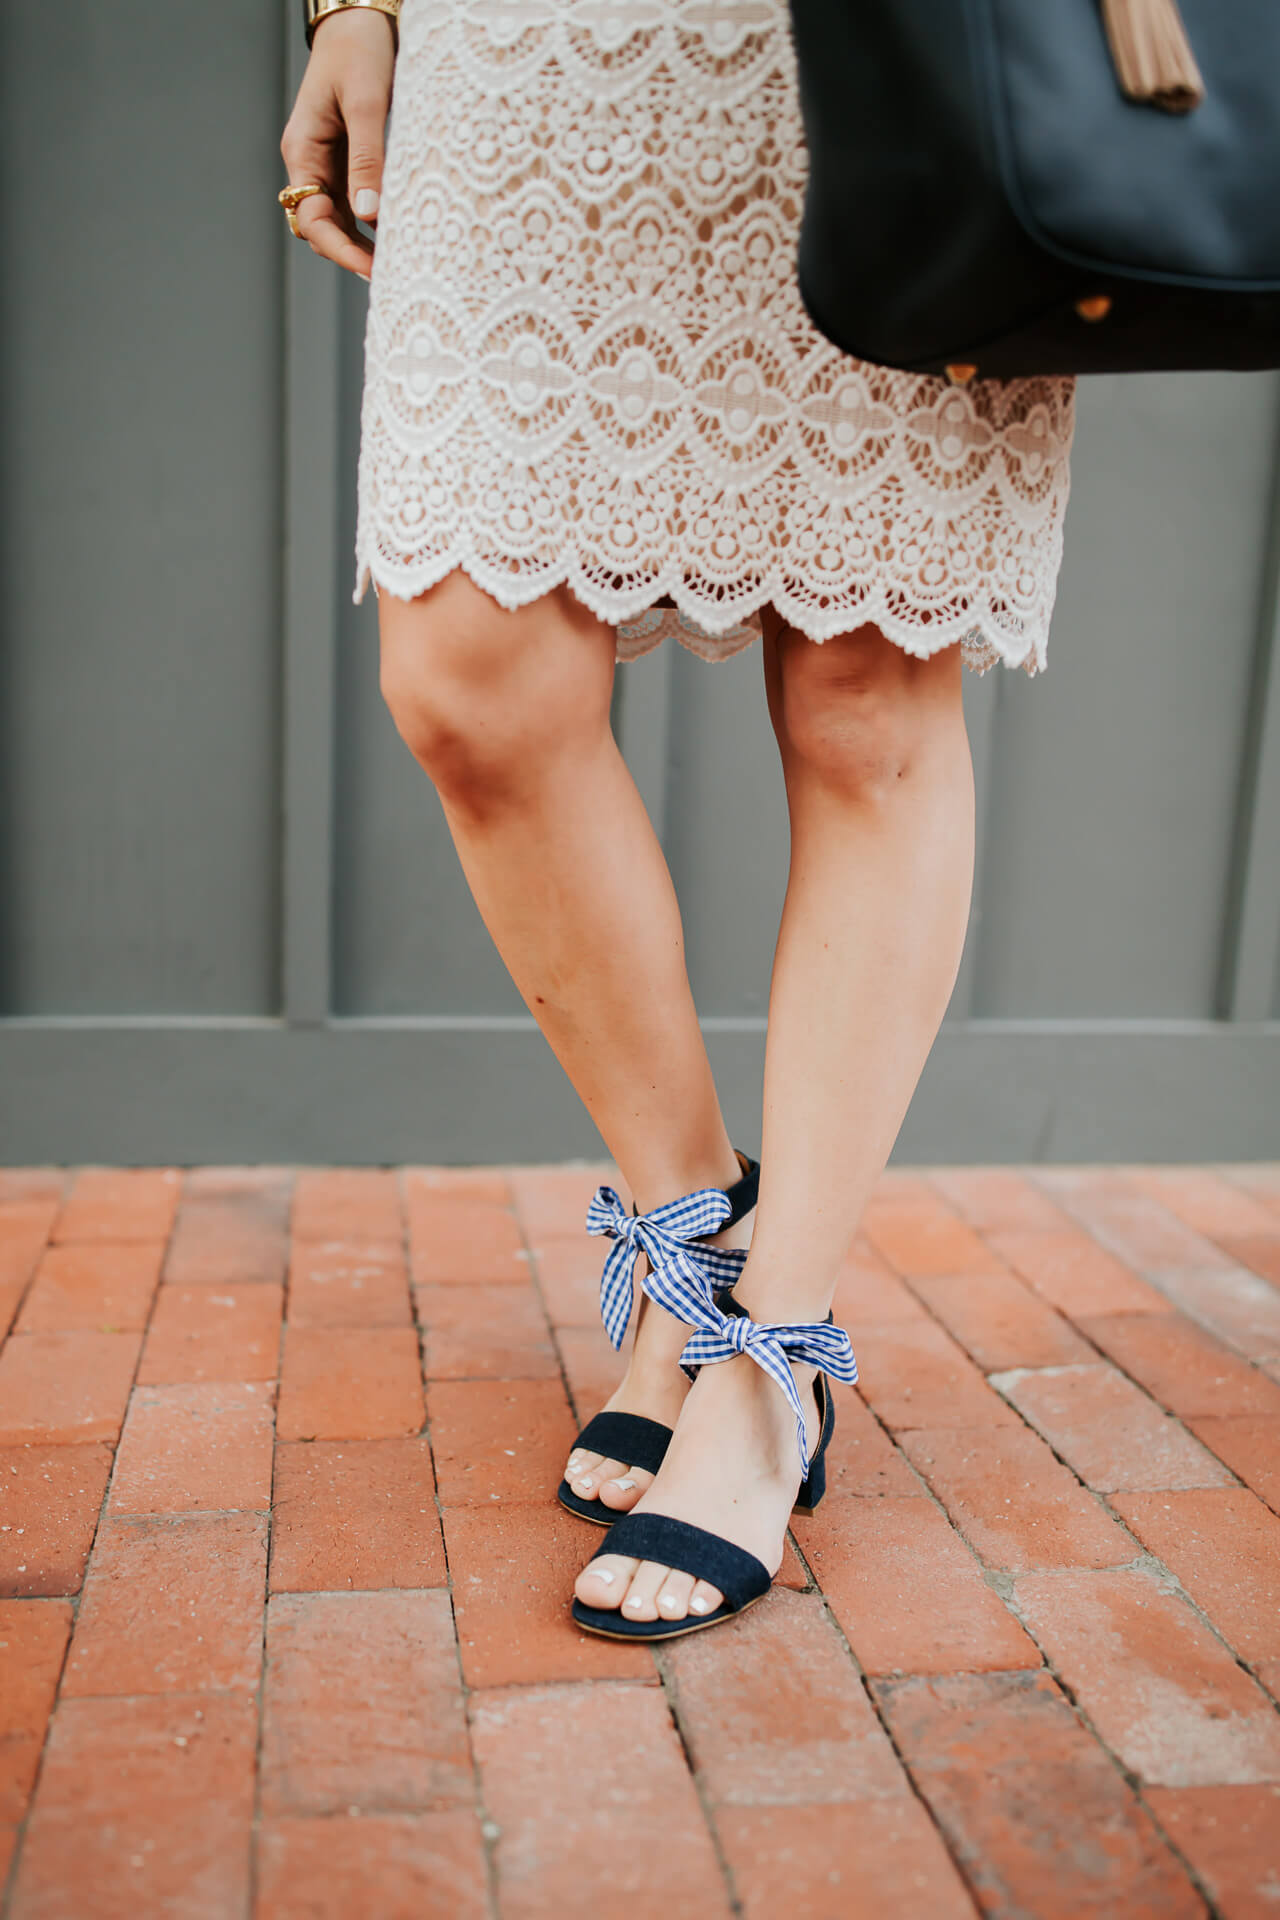 denim sandals with blue gingham bow with white lace dress